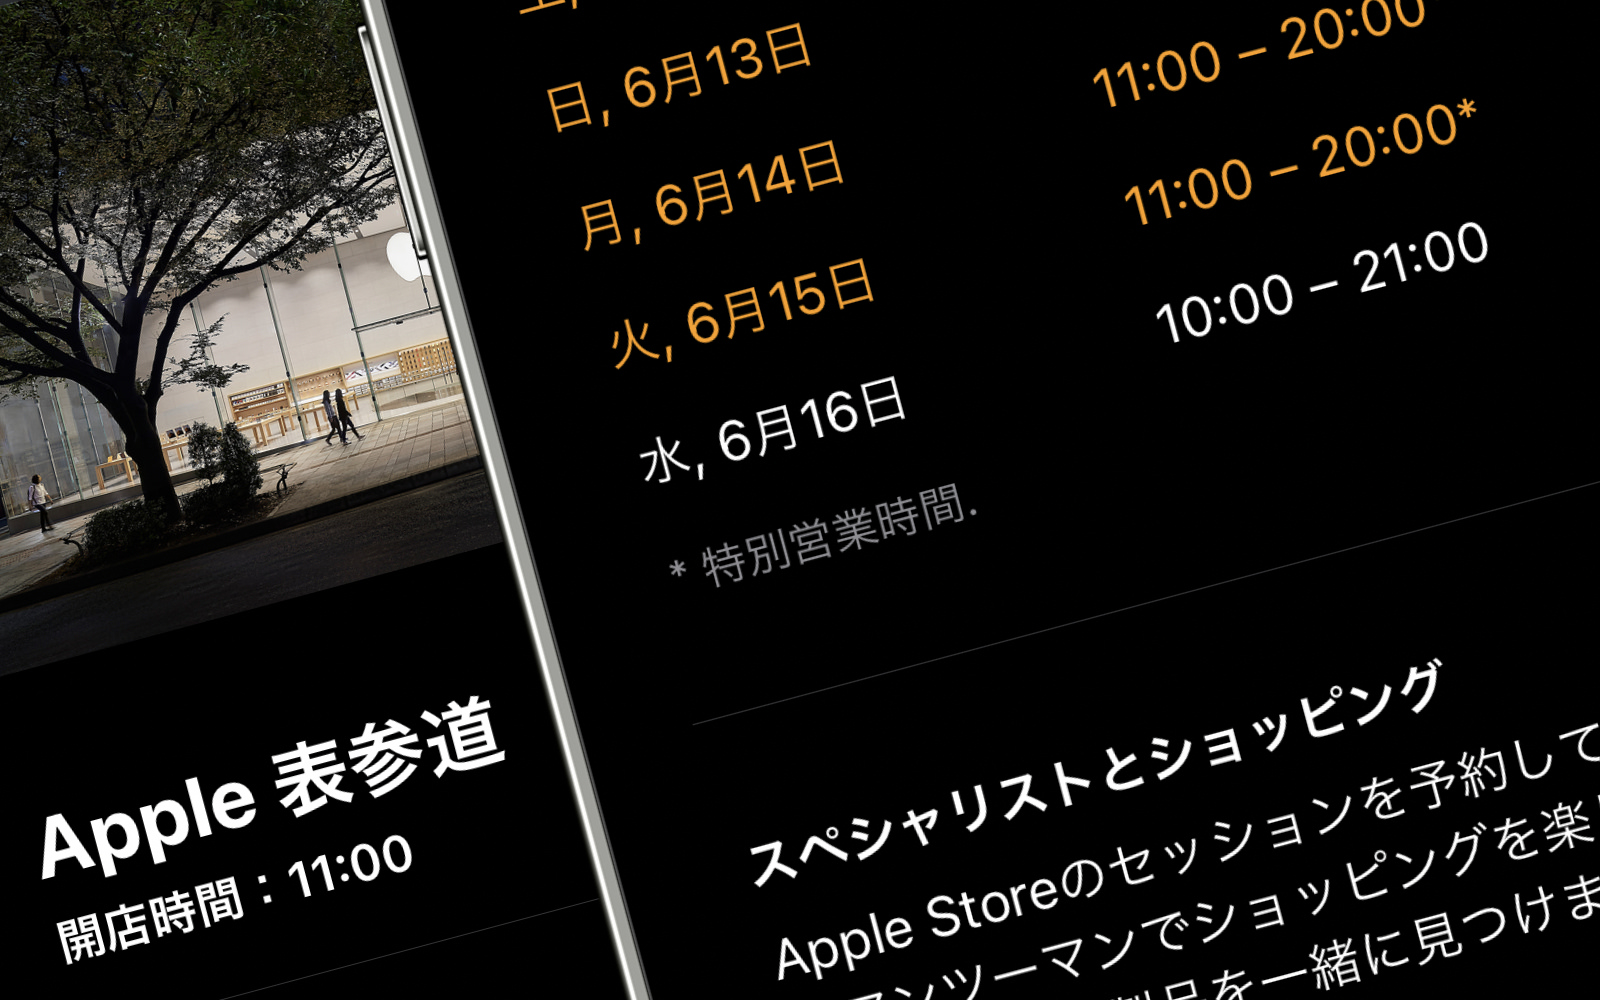 Apple Store Regular Store Times from june16